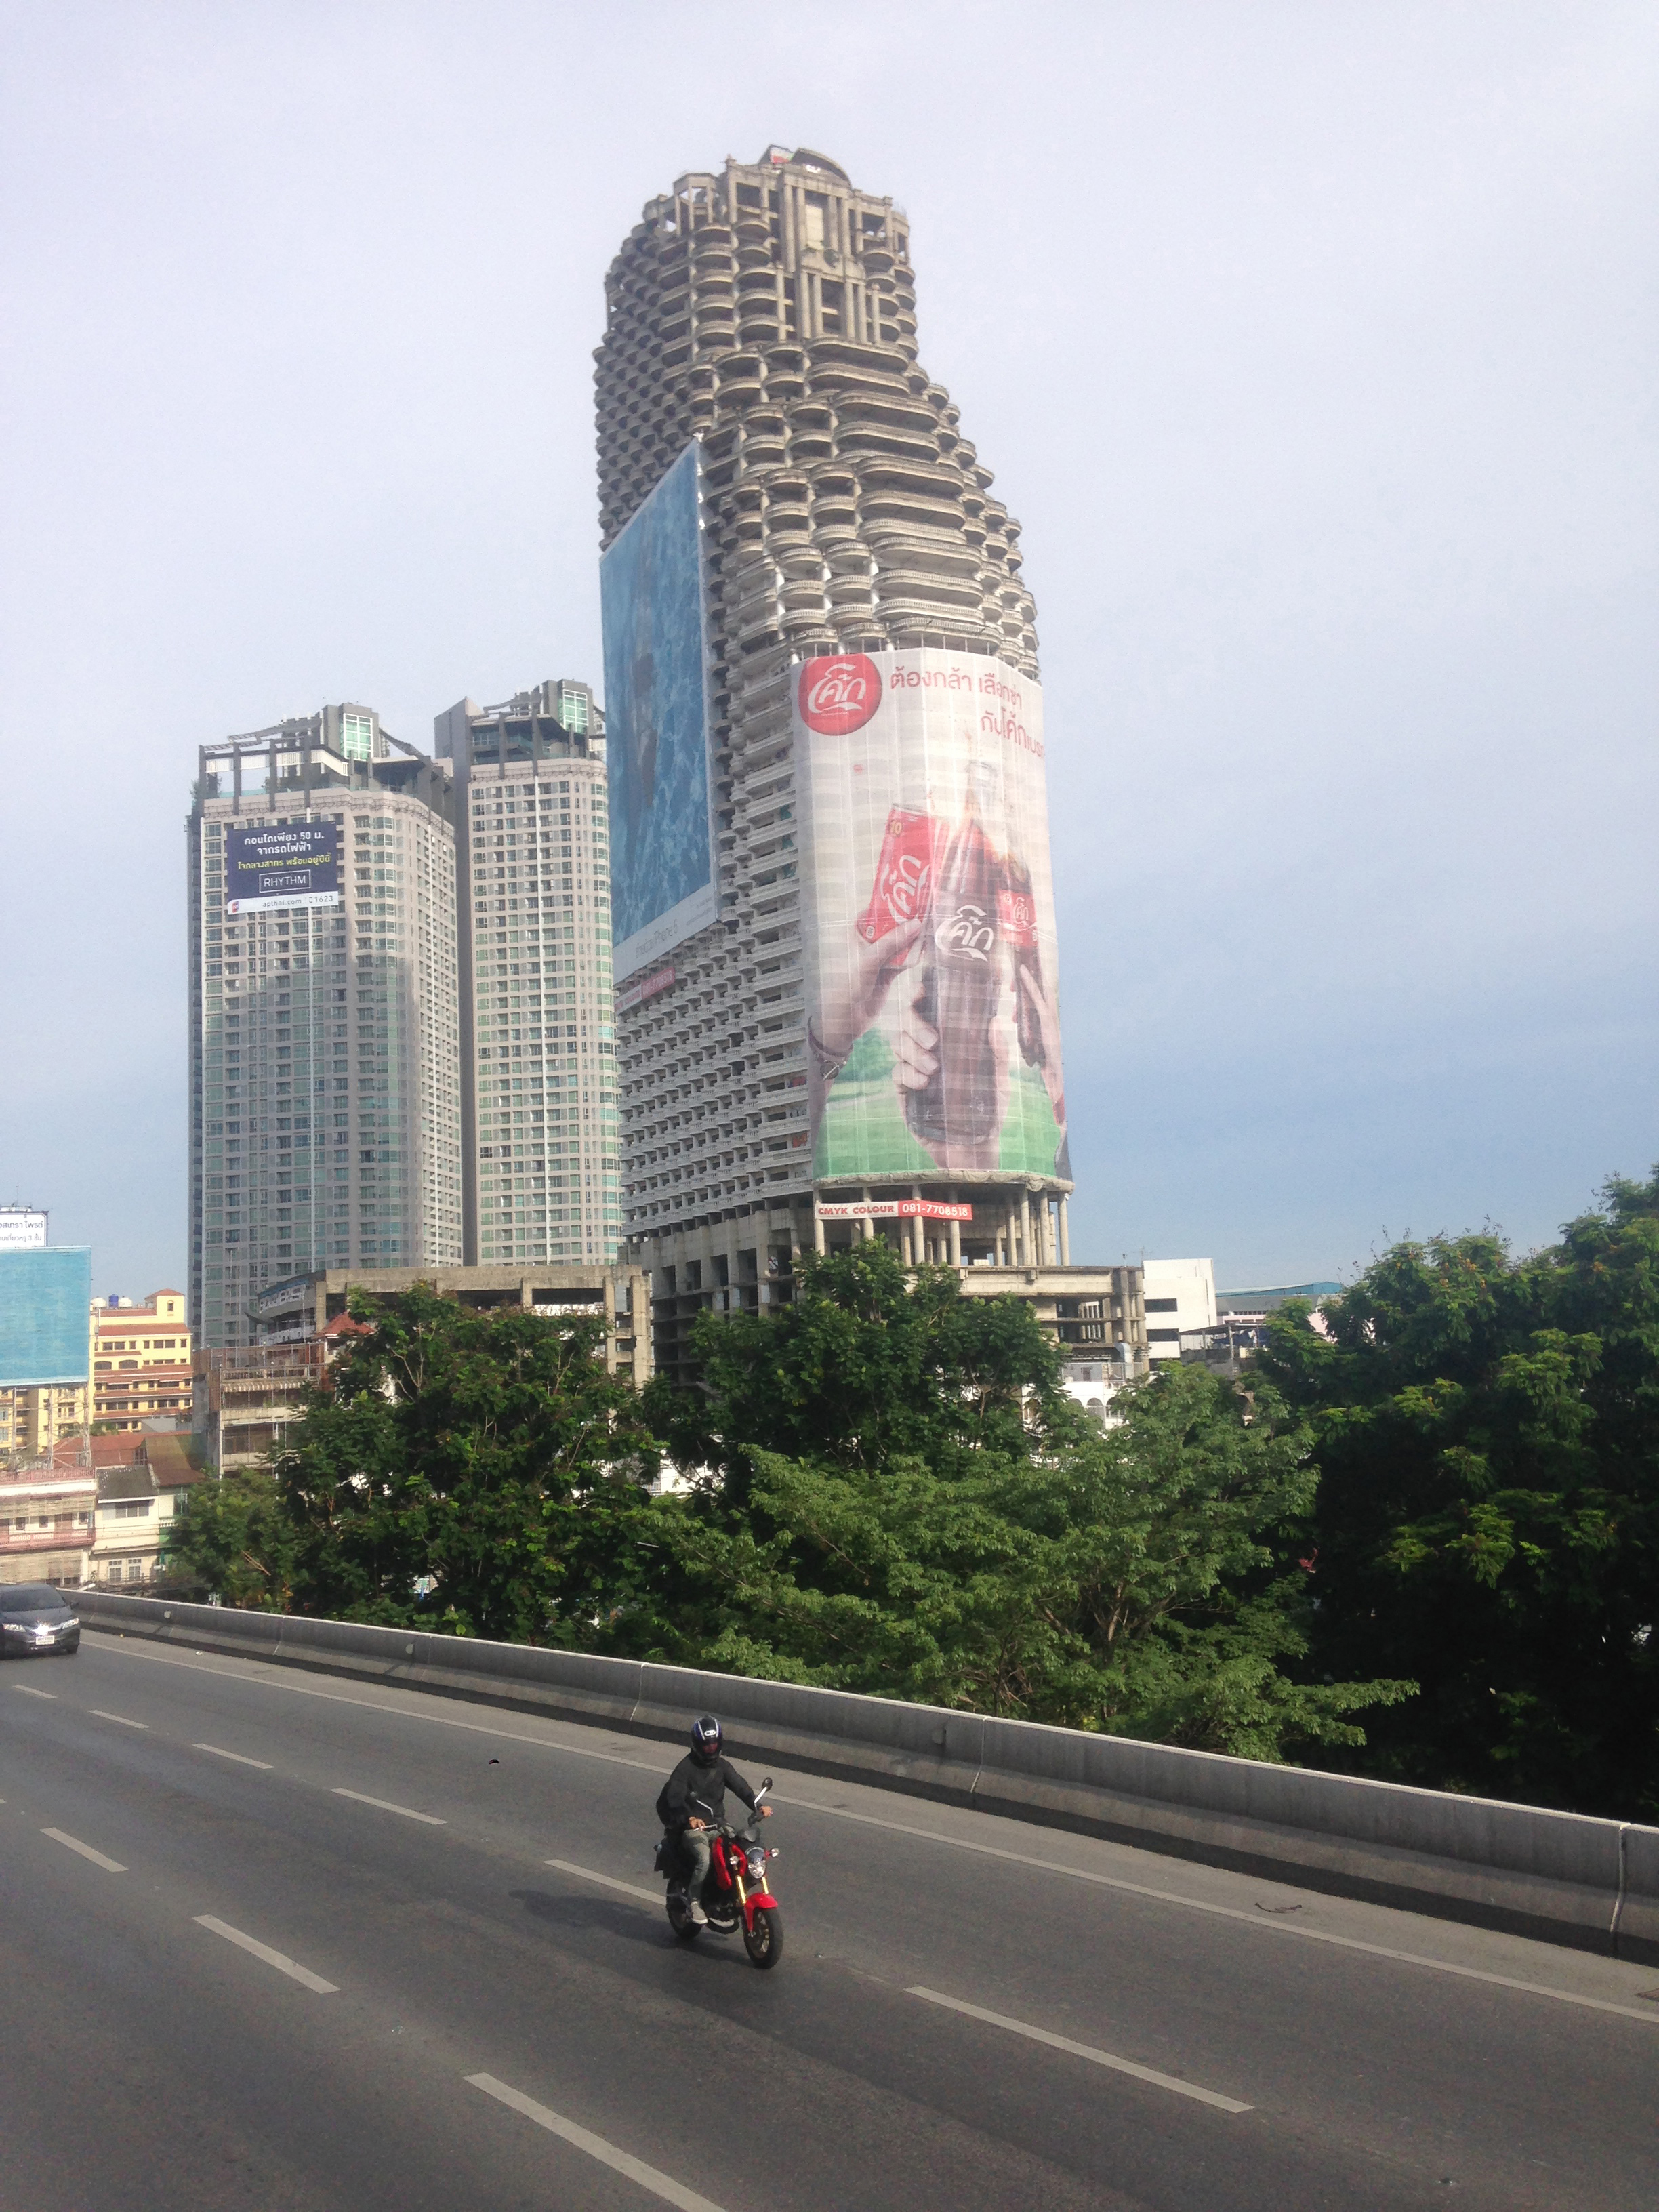 The Ghost Tower as seen from the Saphan Taksin BTS Station